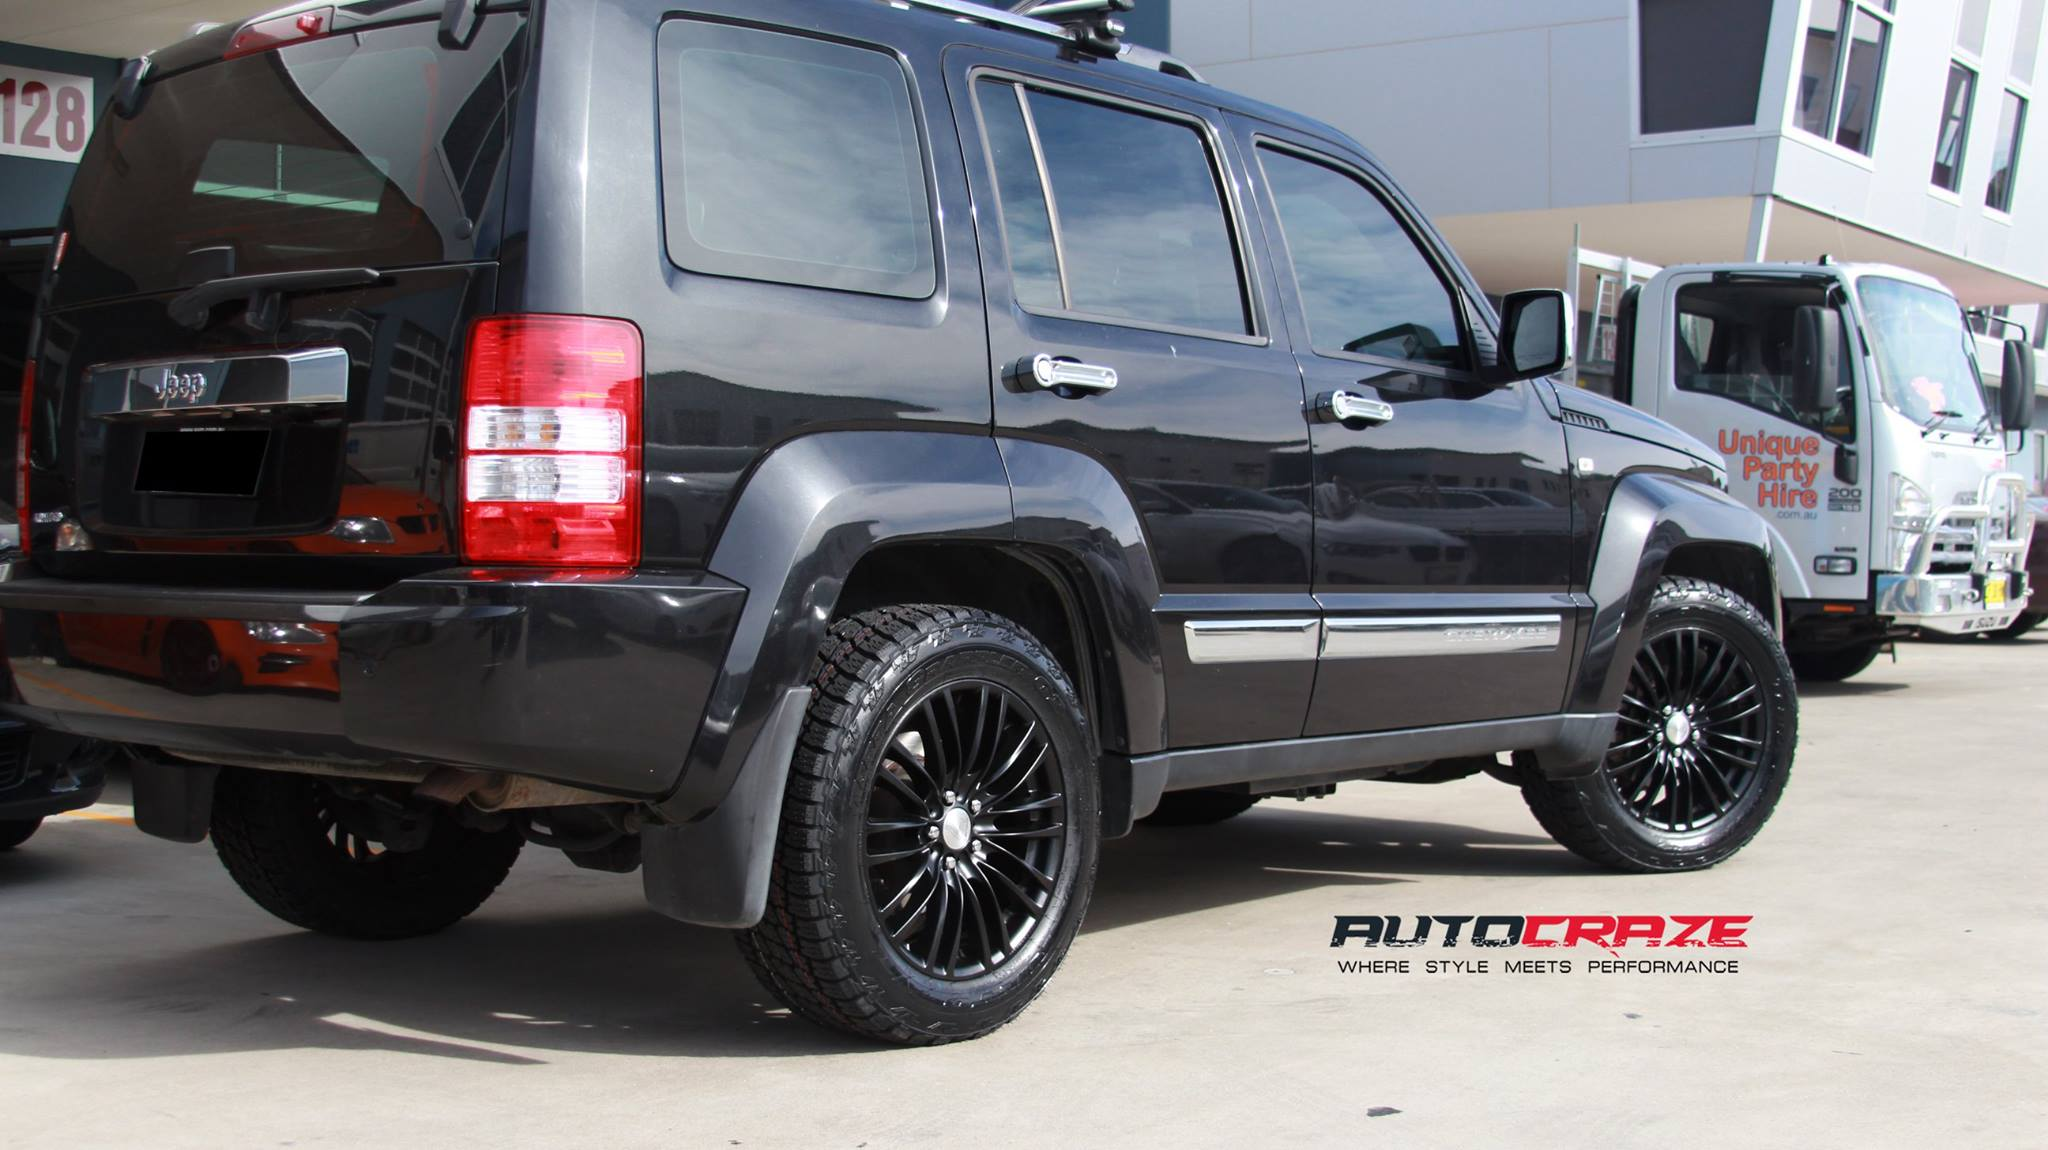 4x4 Off Road >> 4WD Tyres 18inch Rims | Best 4x4 Tires And Wheels Australia